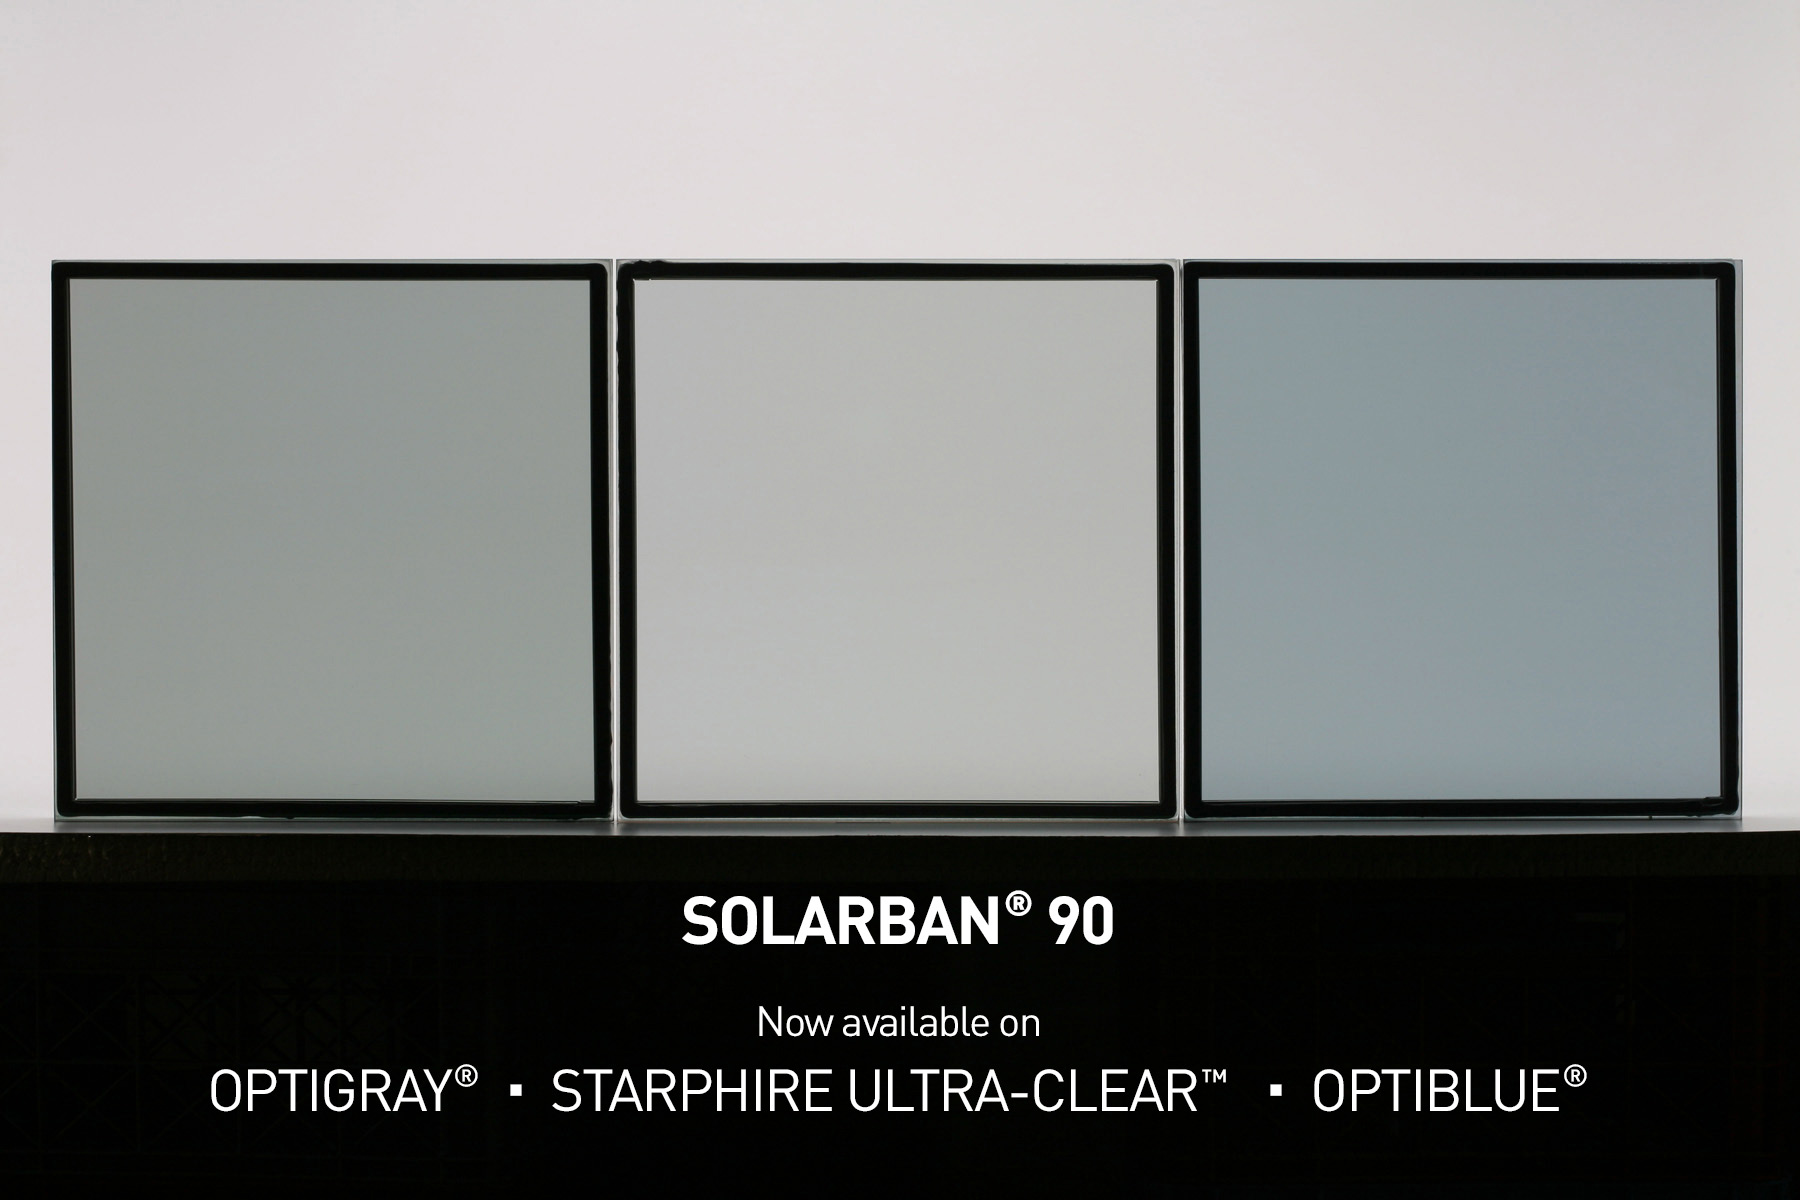 Solarban 90 low-e glass